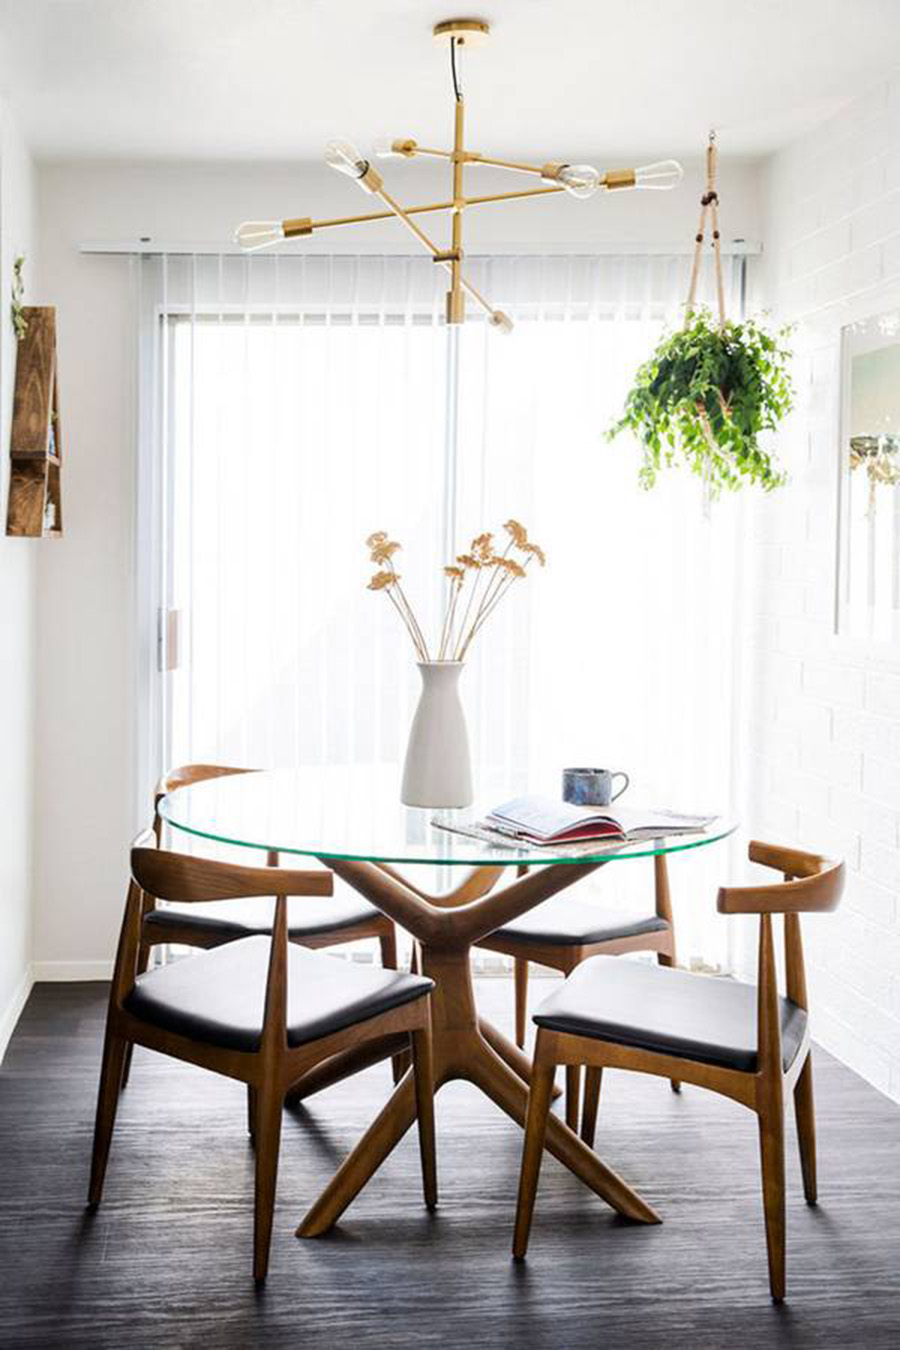 Home Inspiration Southwest Boho Minimalism A Side Of